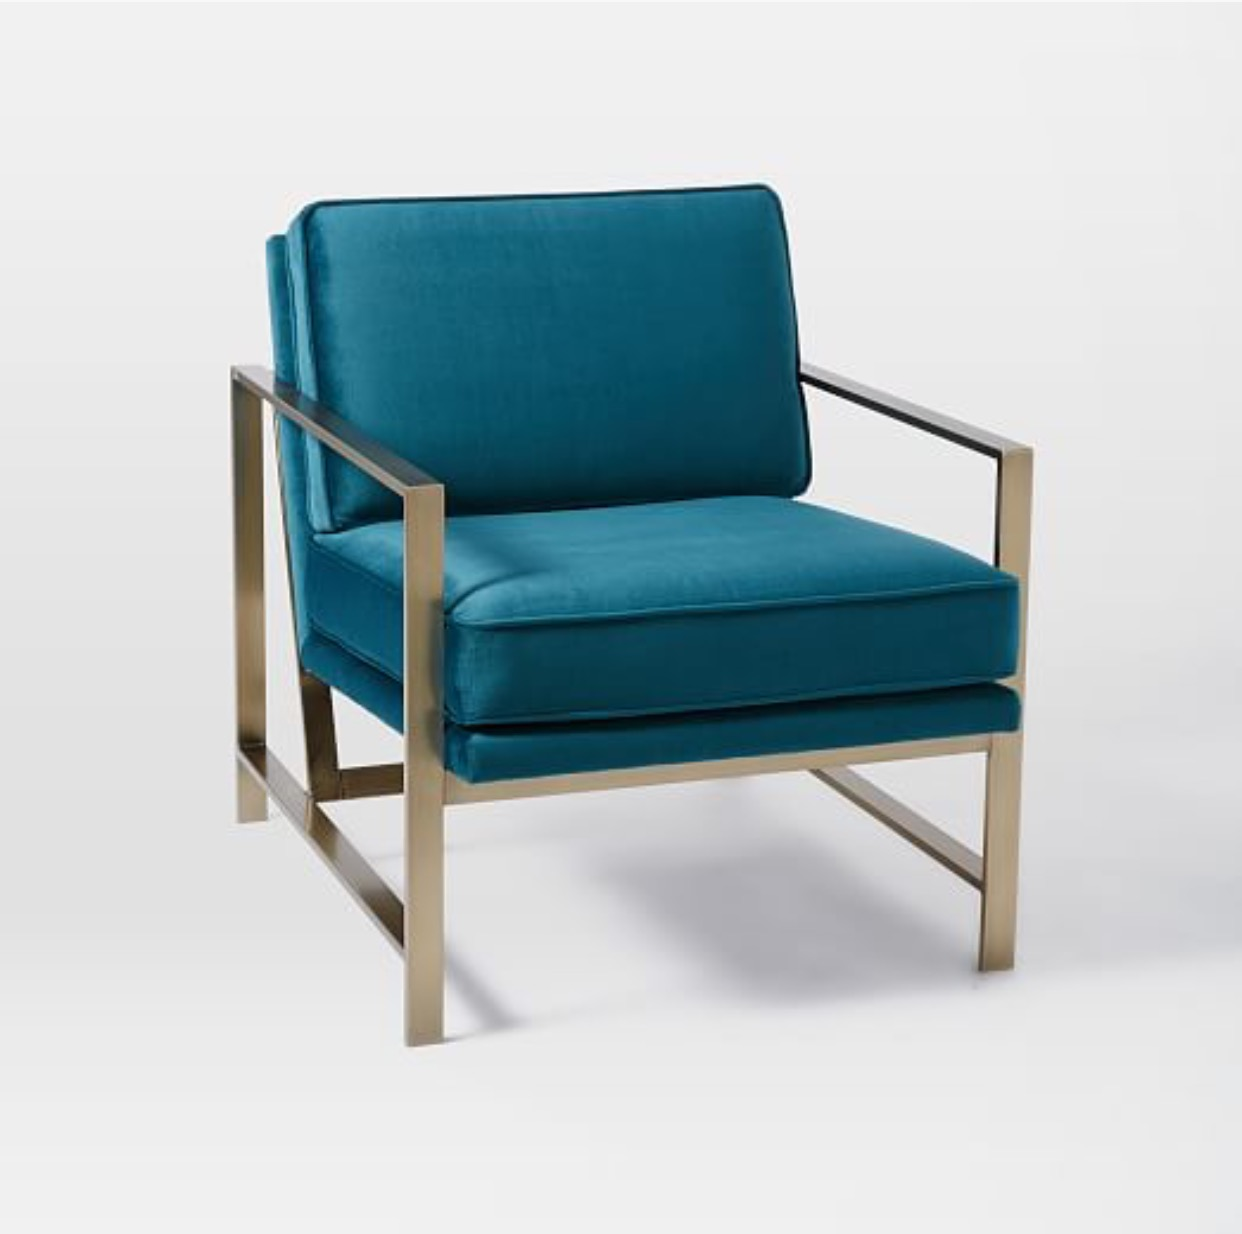 Metal Frame Chairs Deluxe Folding Avery Street Design Blog Gimme Dat Chair